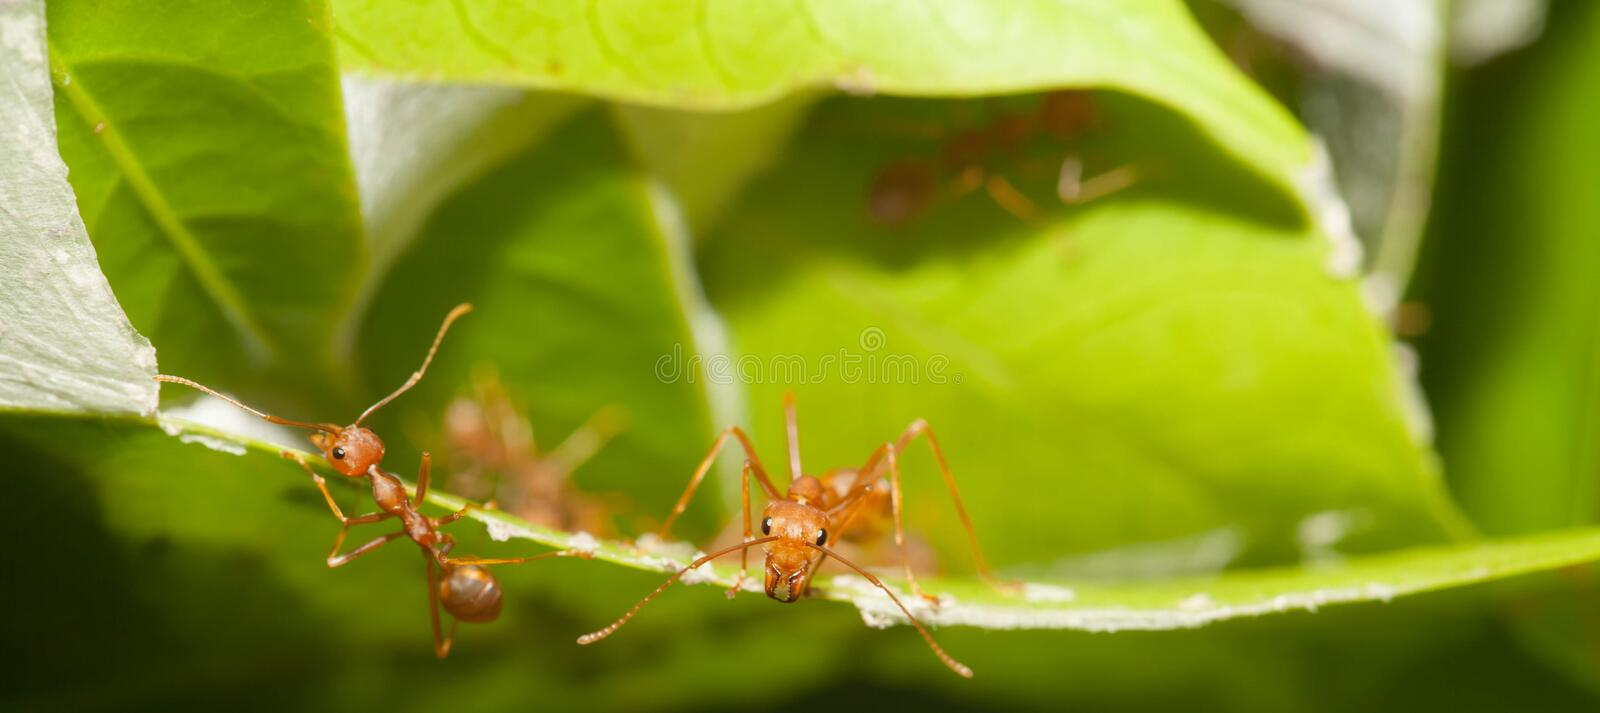 Ants soldier. Protect the house royalty free stock photography